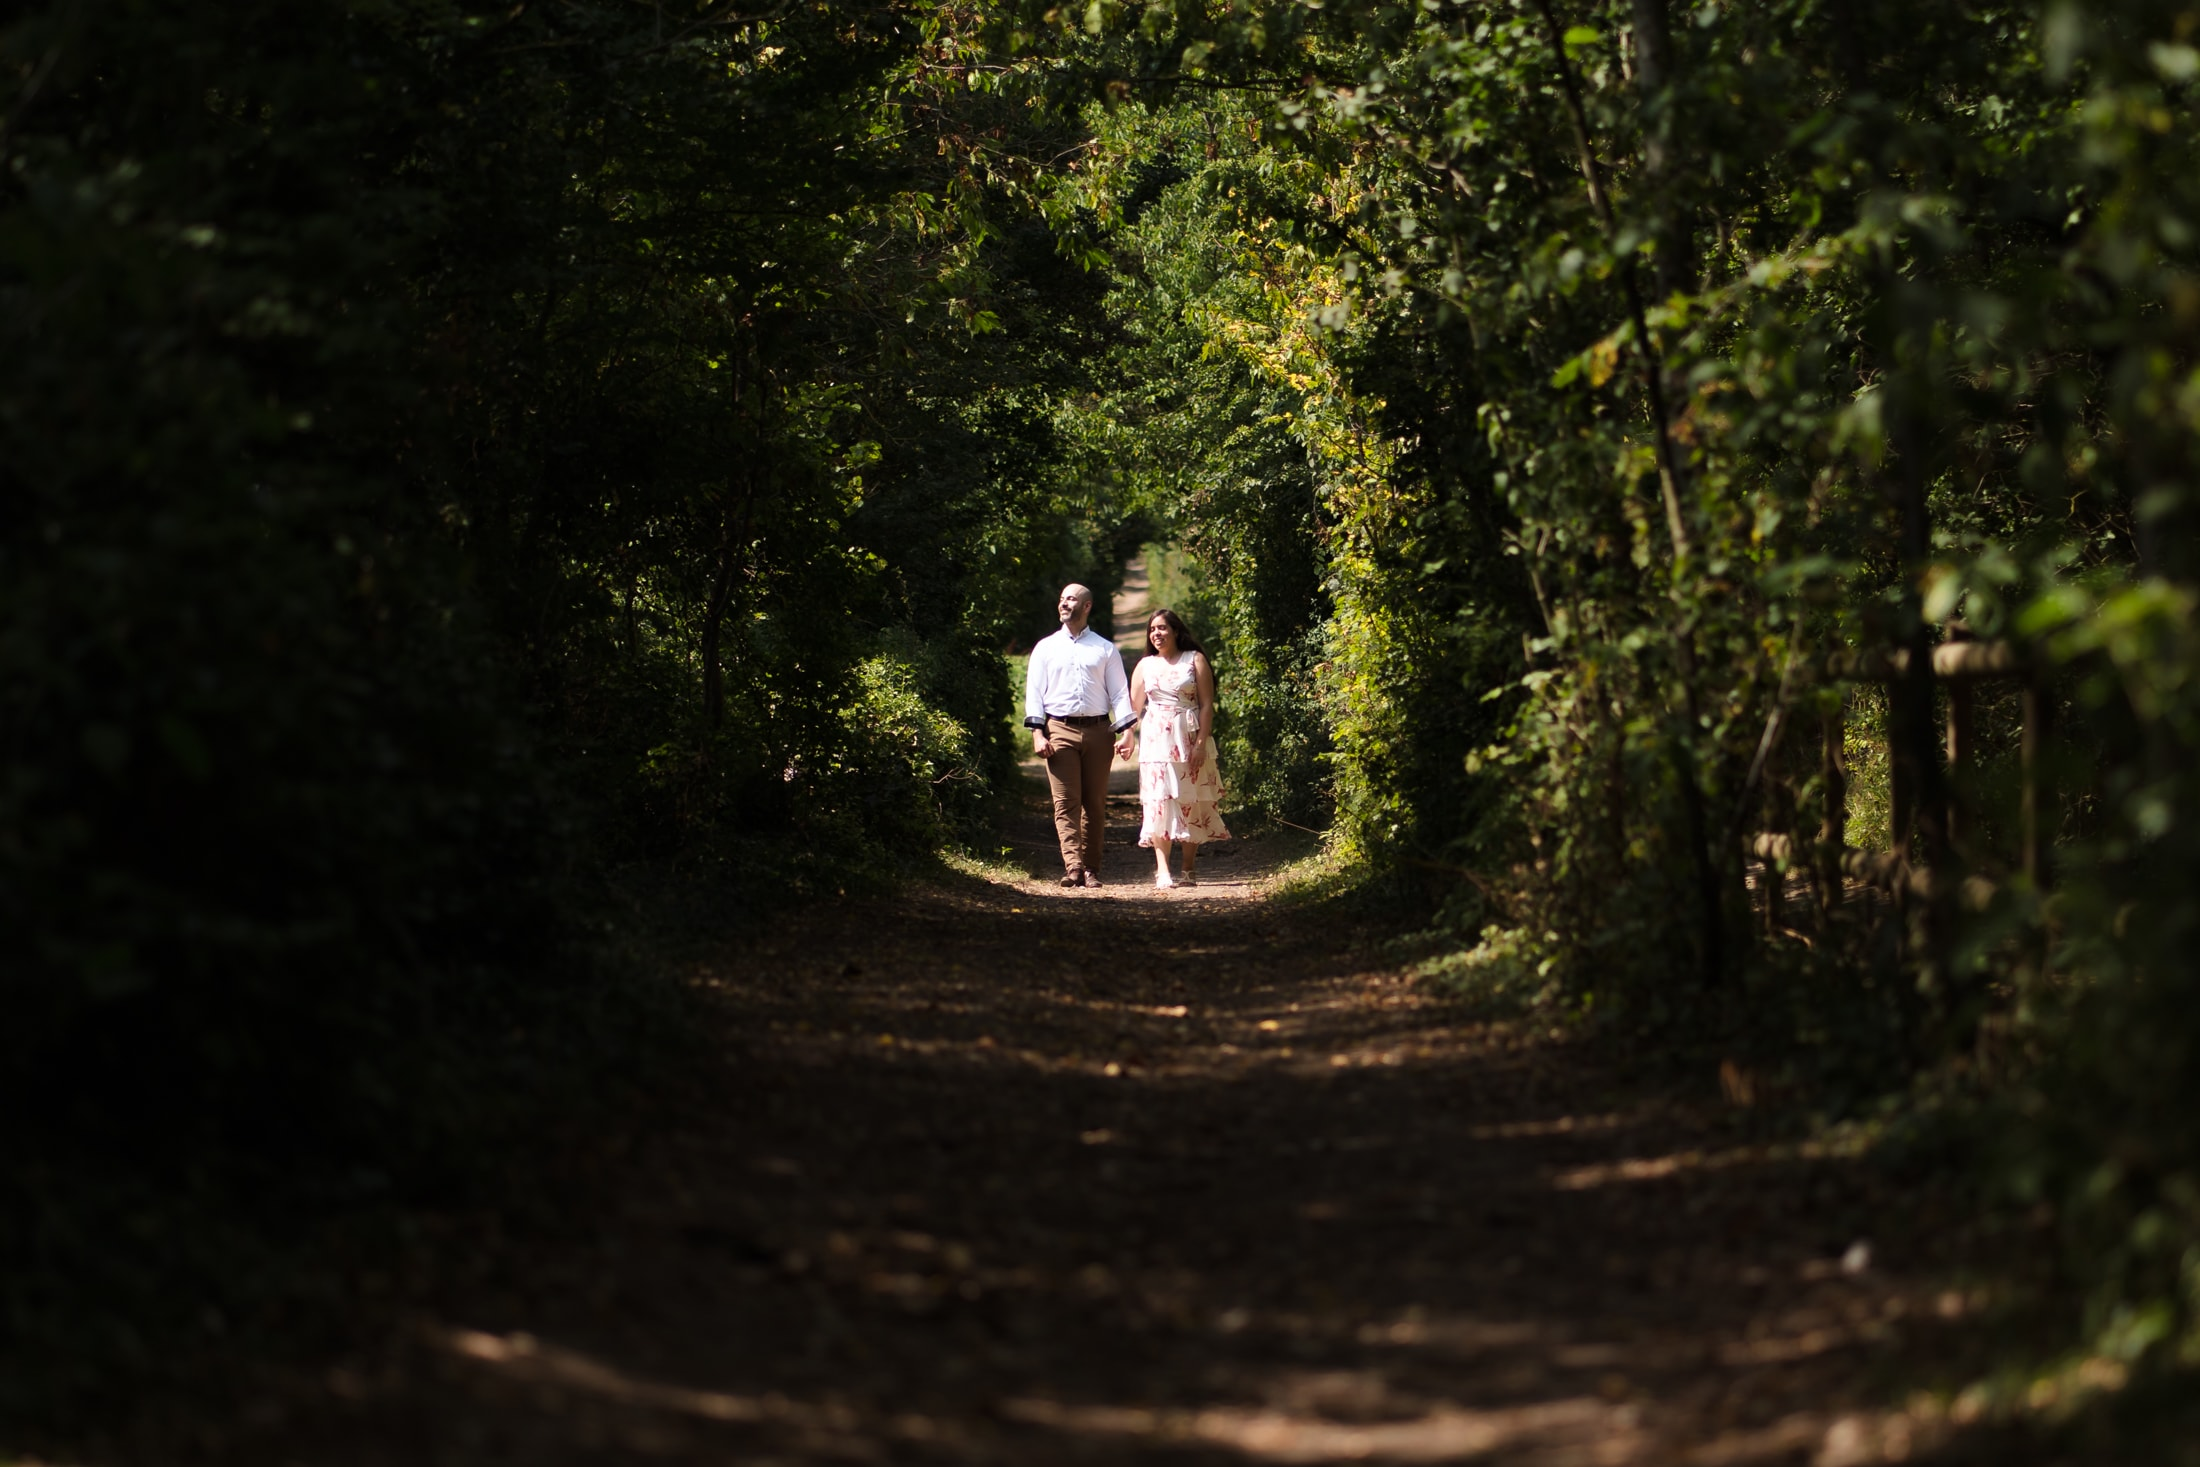 engagement photographer session of Charlotte and Mo at Lullingstone country park in Kent